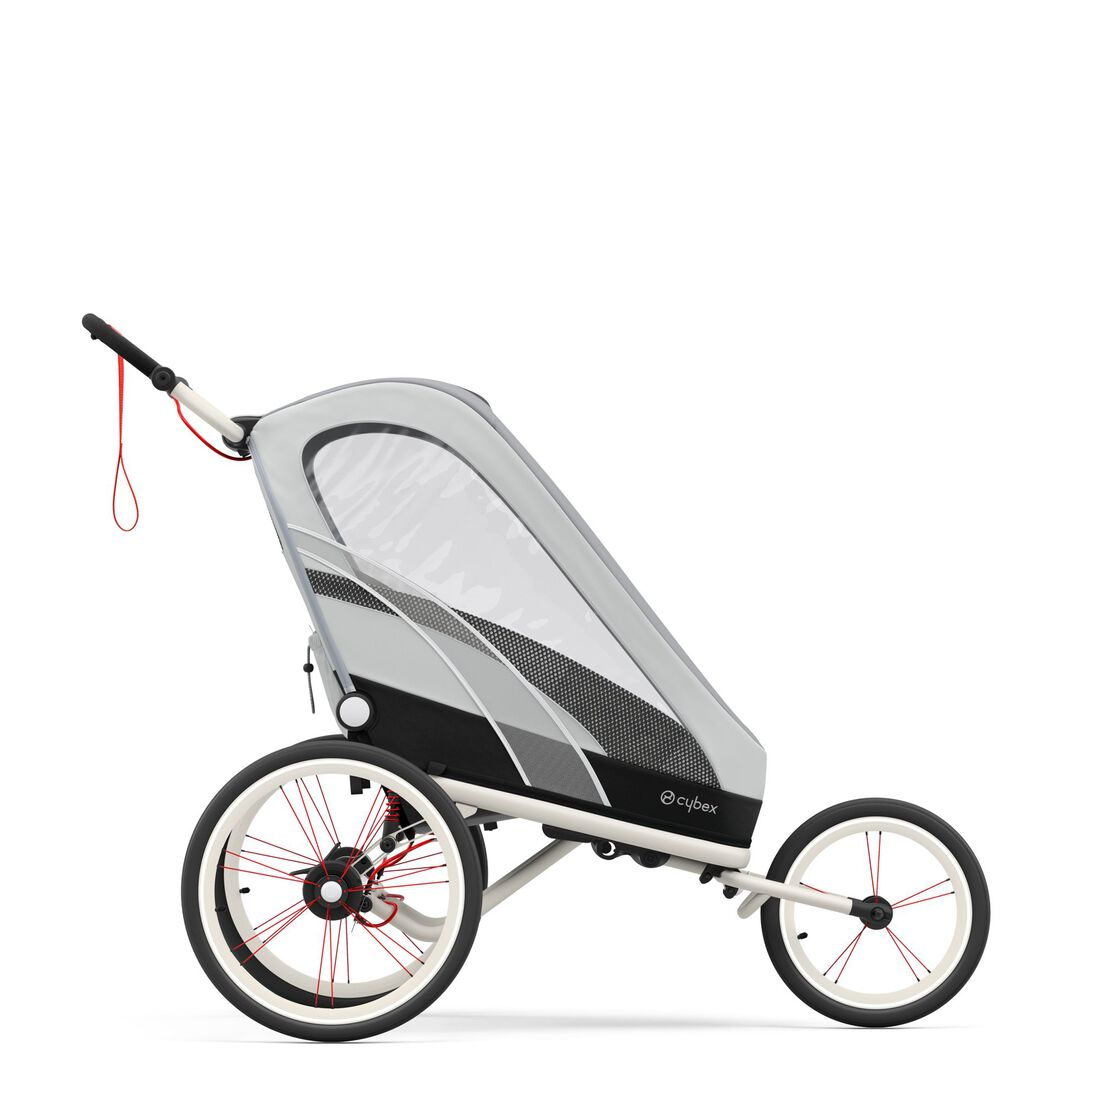 CYBEX Zeno Seat Pack - Medal Grey in Medal Grey large image number 4